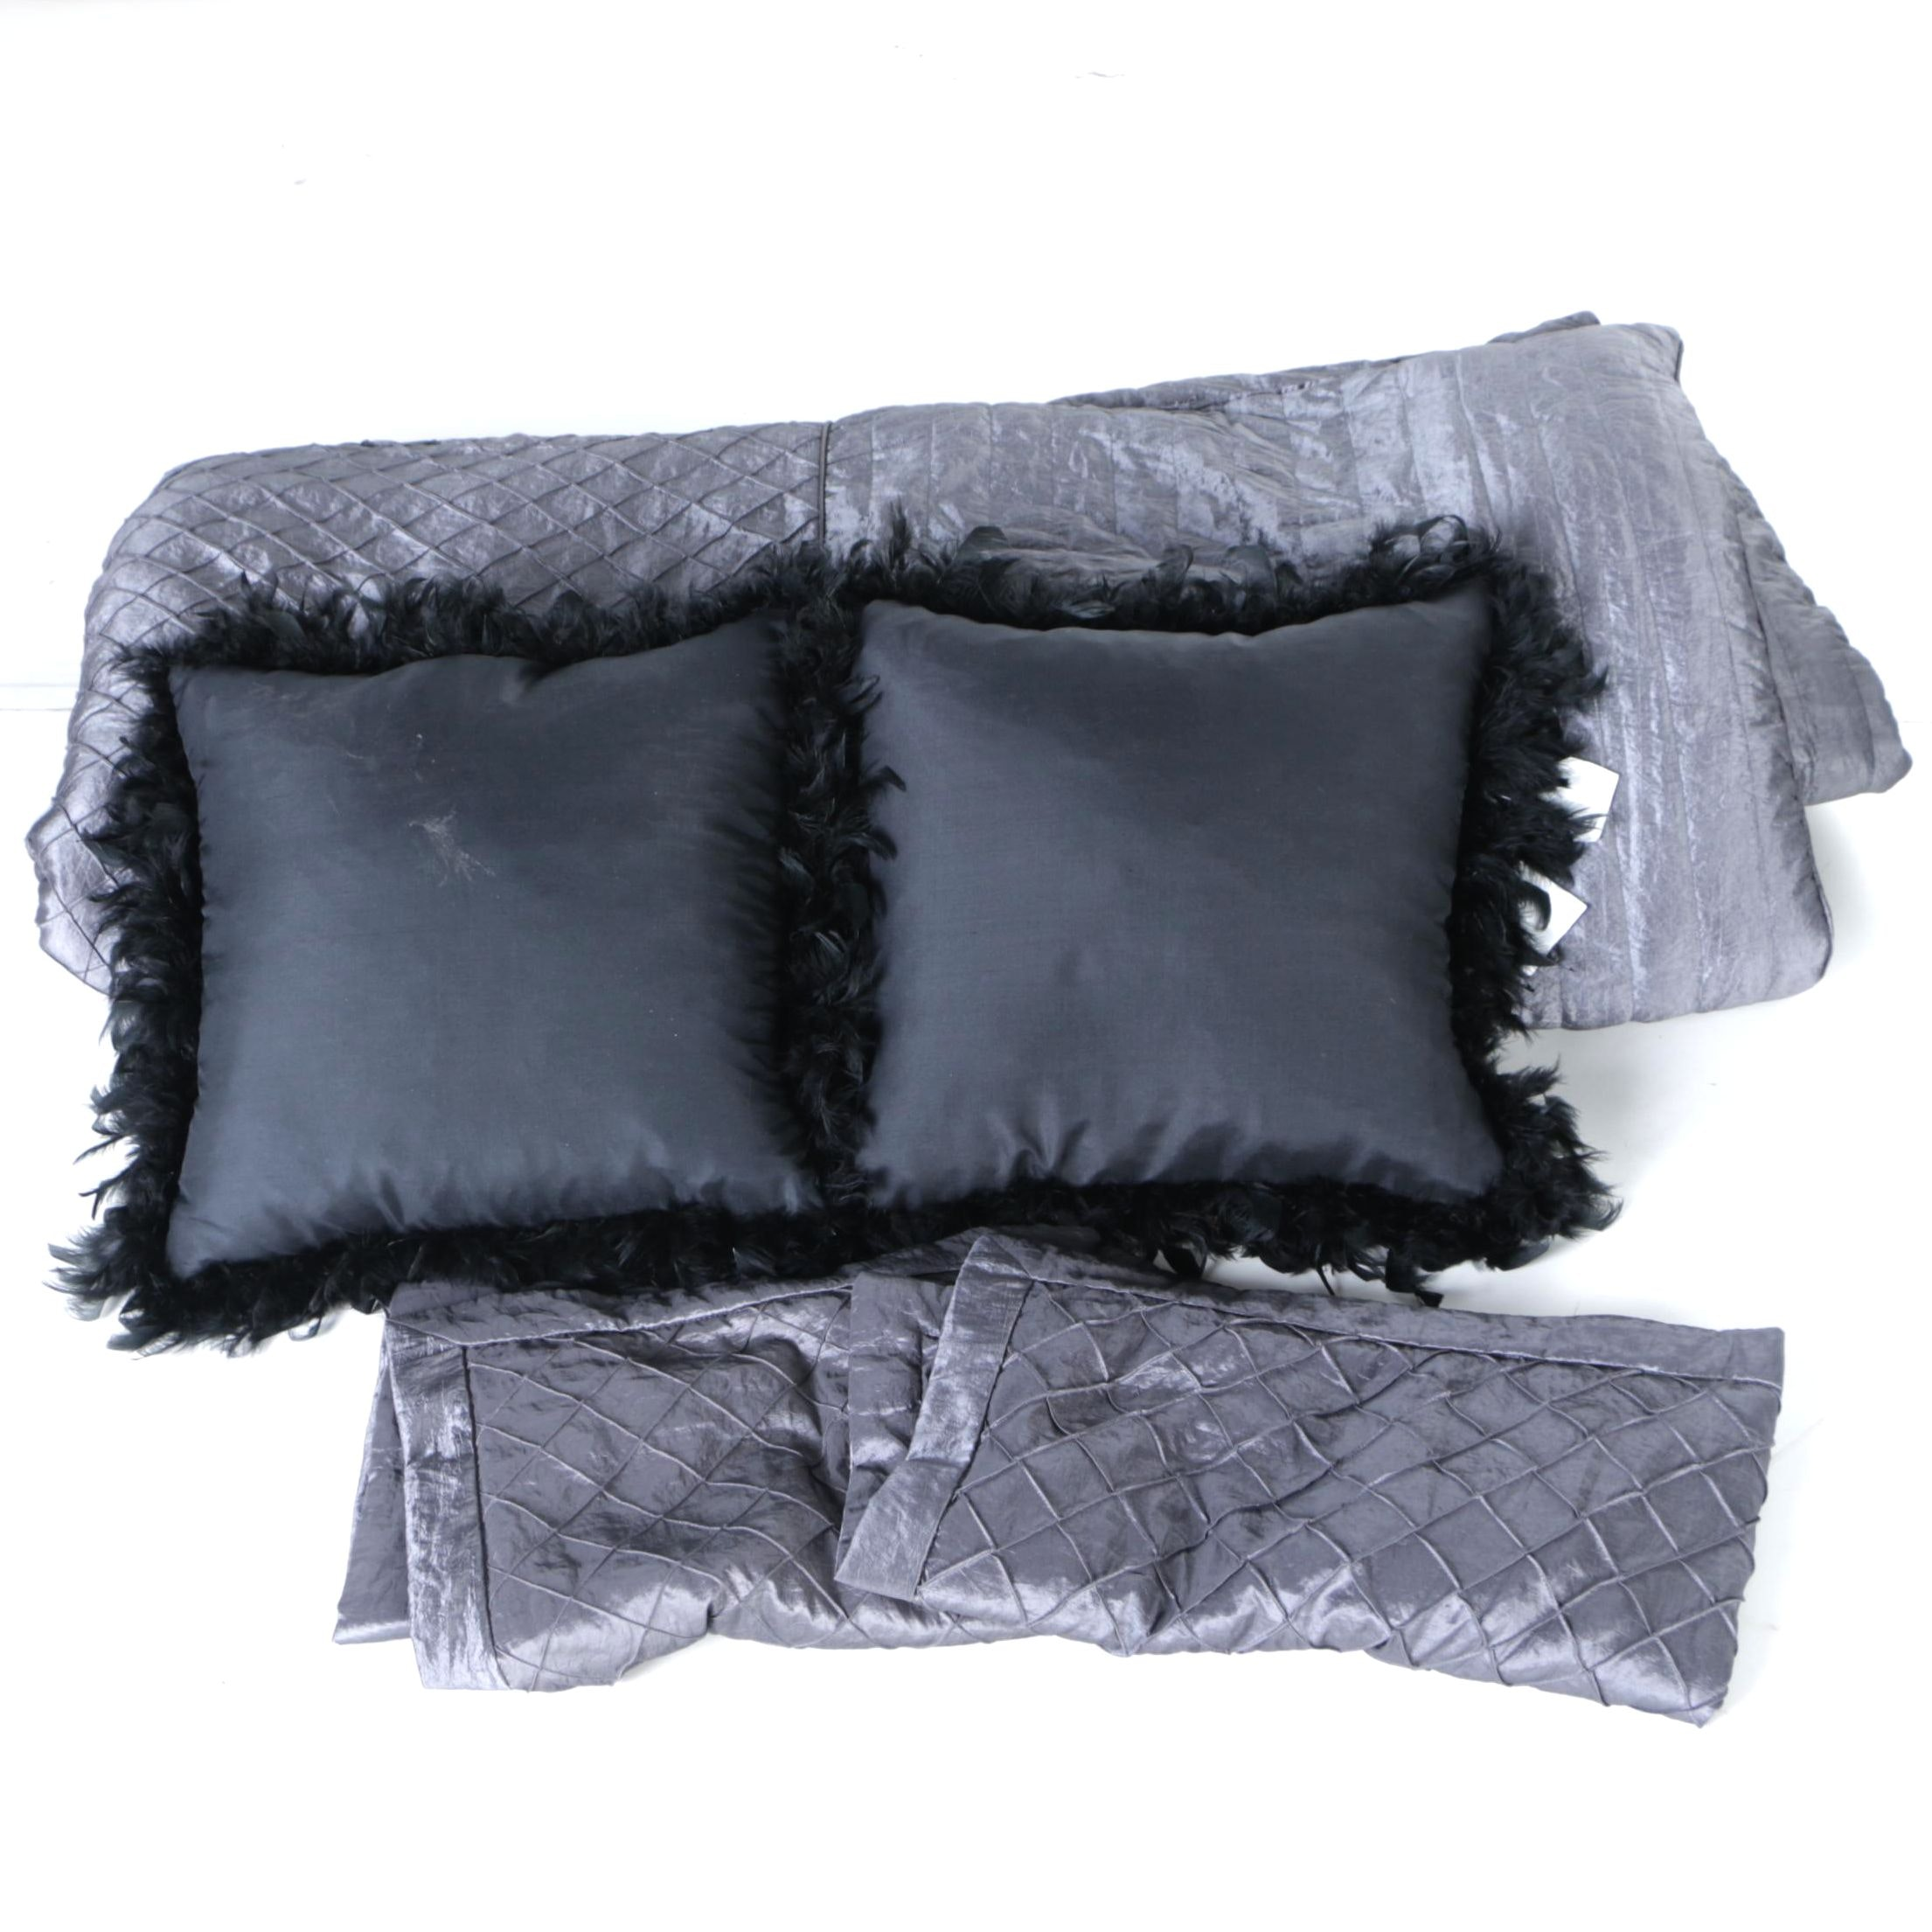 Queen Size Bedding with Two Black Throw Pillows